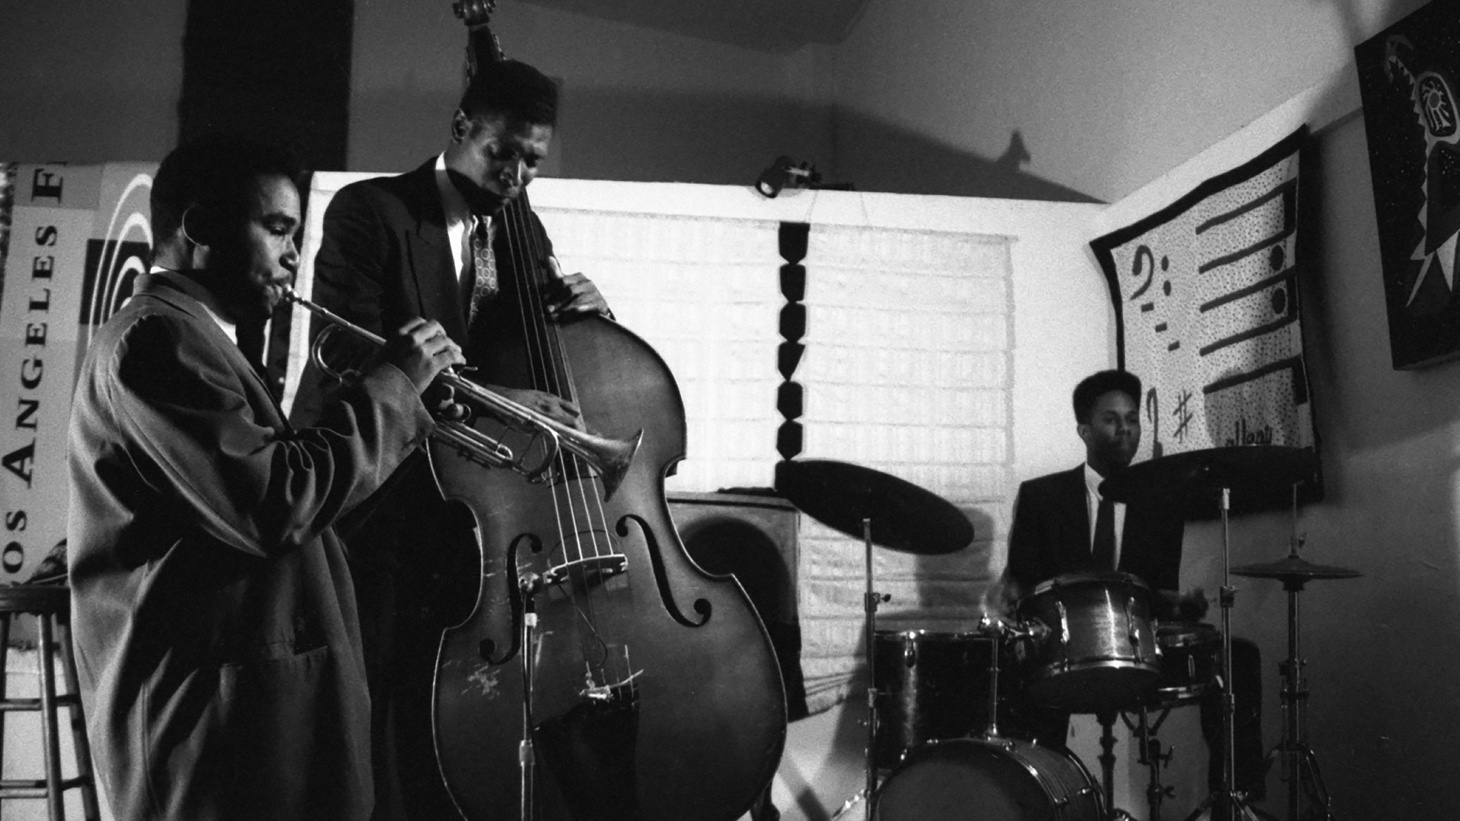 """Jazz ensemble """"Black Note"""" performing at The World Stage. Pictured: Richard Grant (trumpet), Marcus Shelby (bass), Willie Jones III (drums)."""